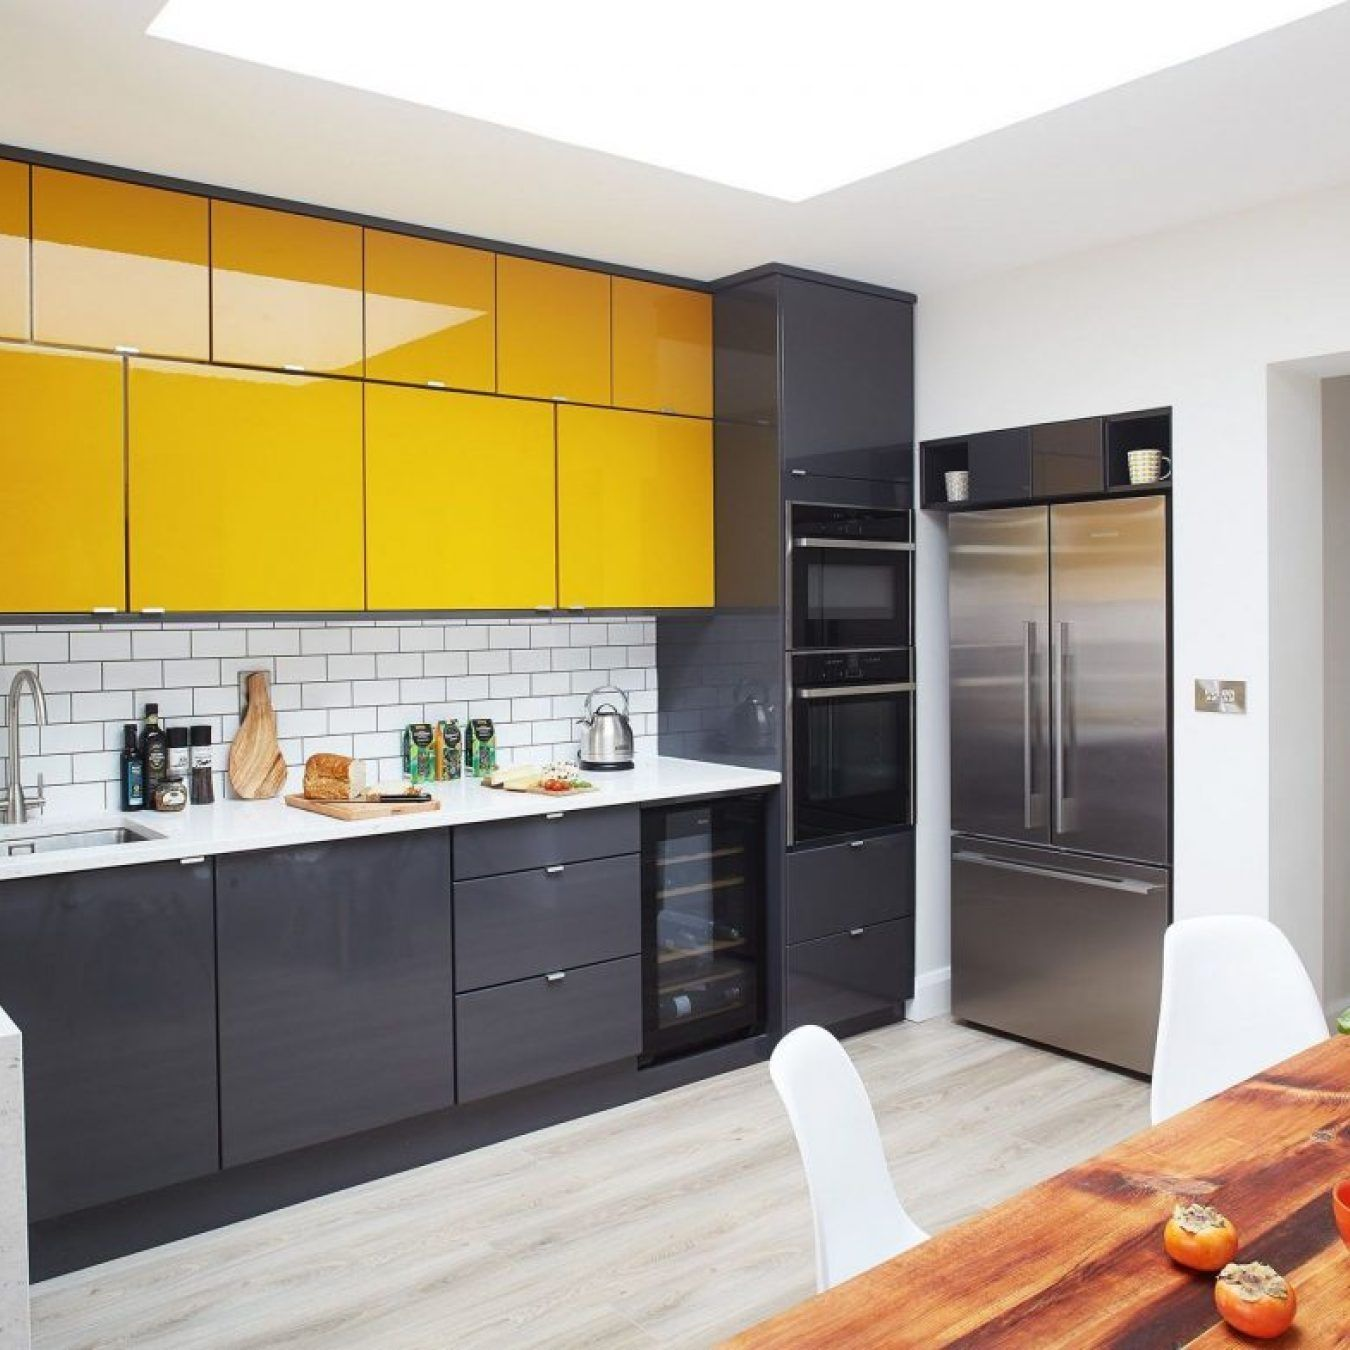 36 the absolute best plan you should be using for trendy kitchen with images kitchen on kitchen cabinets color combination id=12155